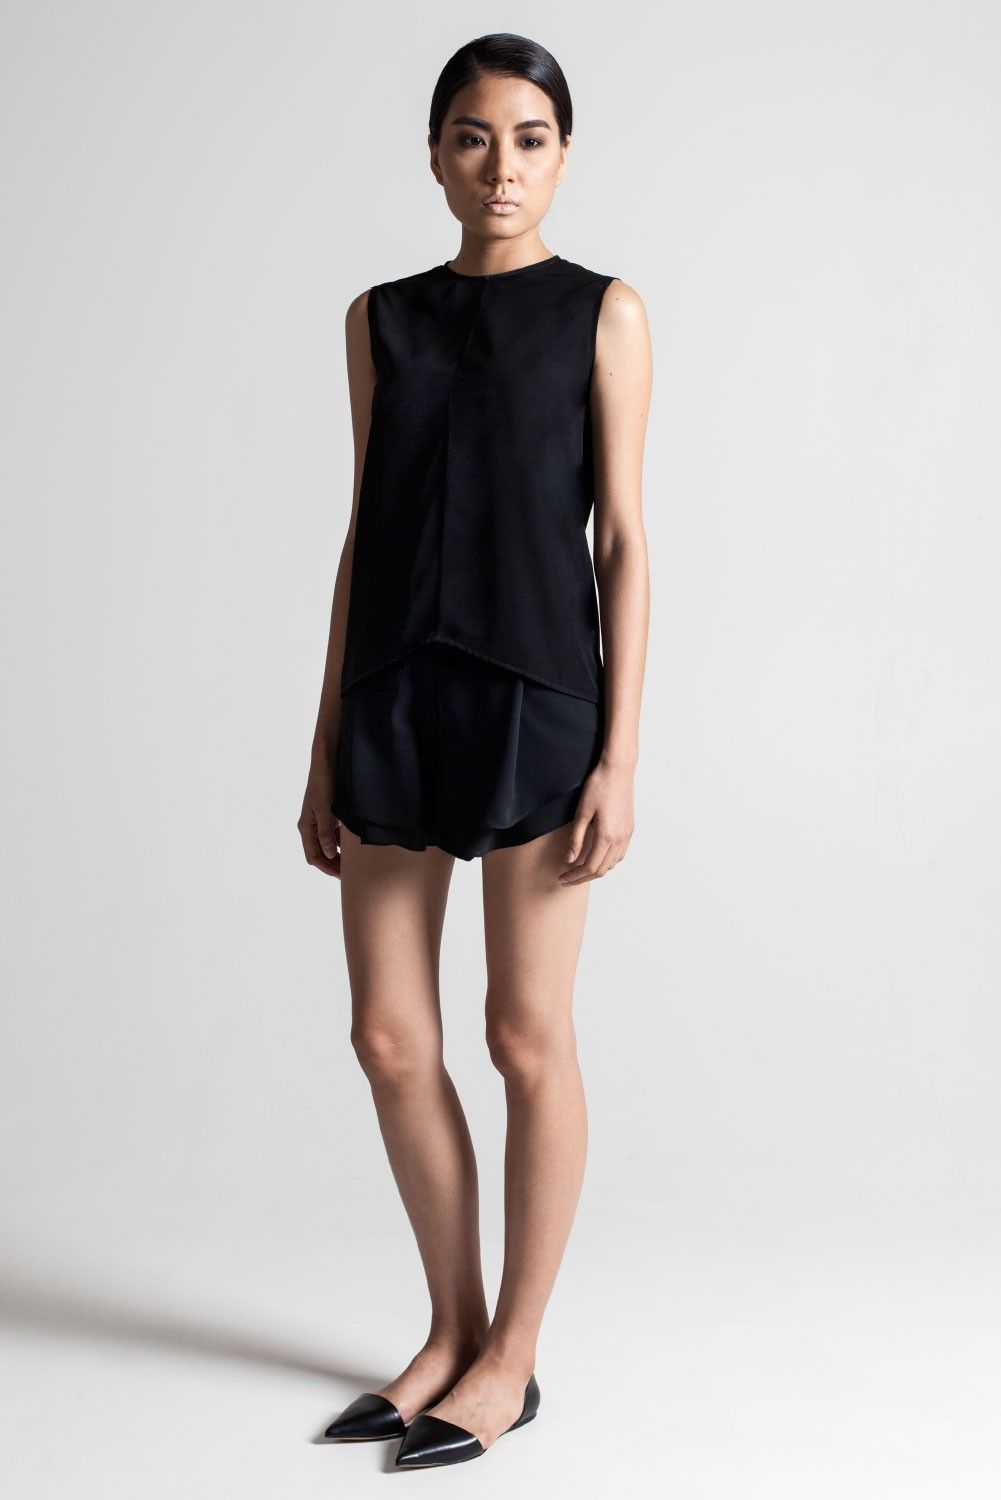 IIKONEE SS14 available online